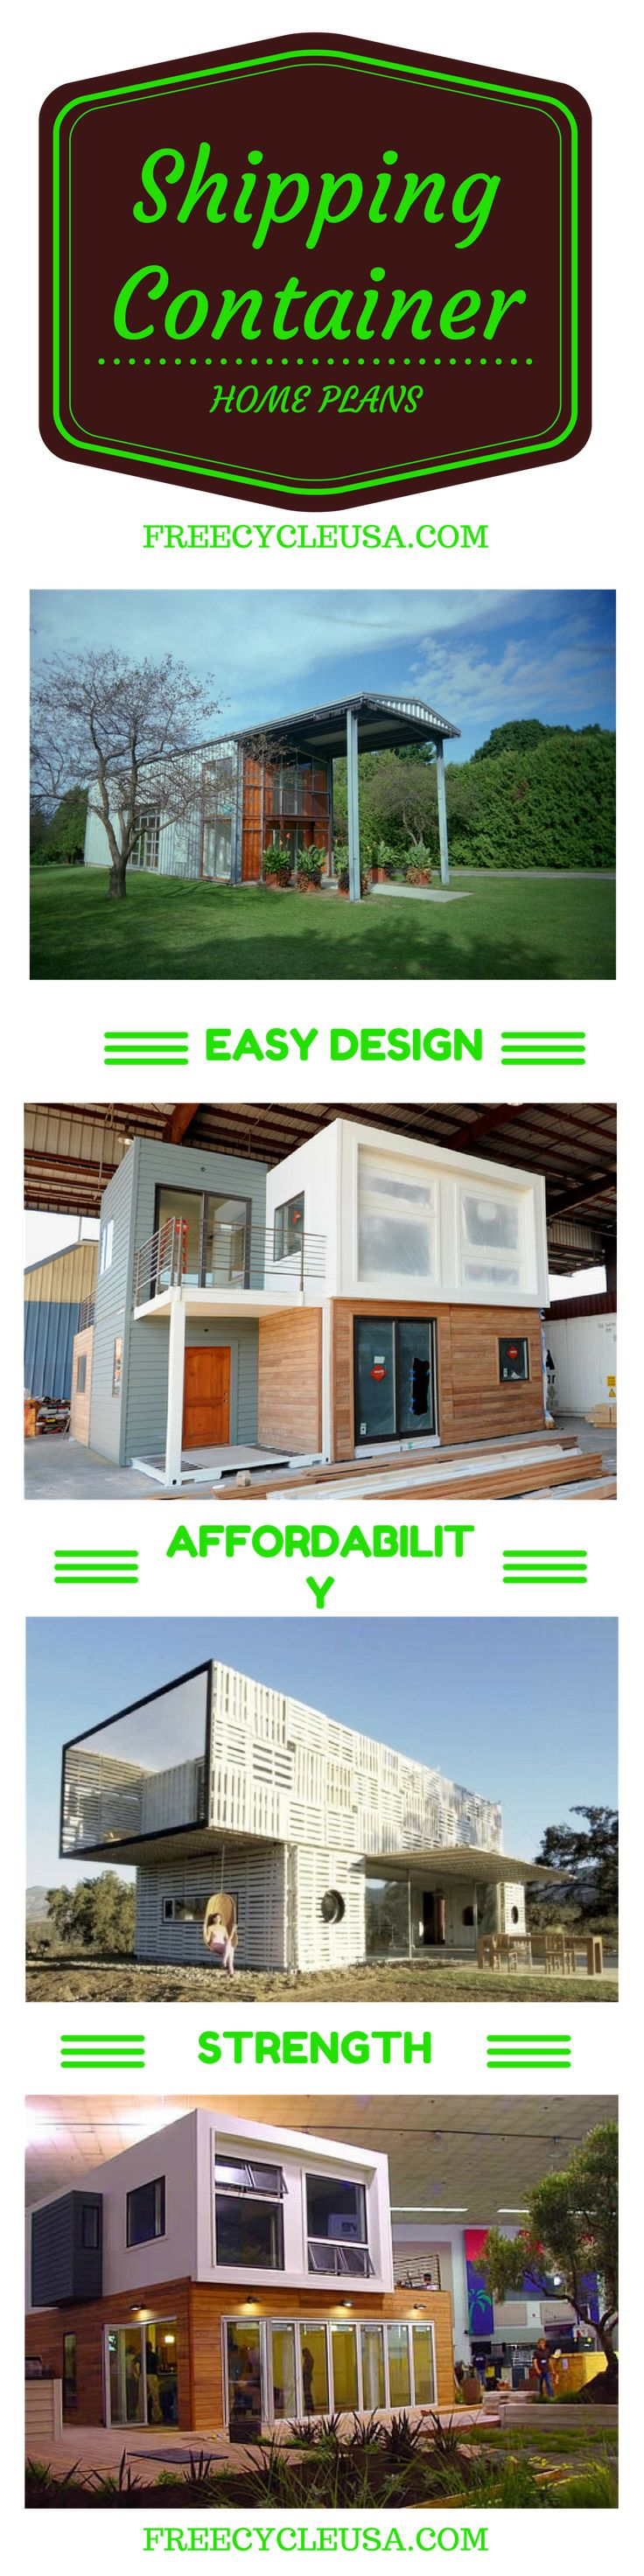 http://freecycleusa.com  How To Build A Shipping Container Home.